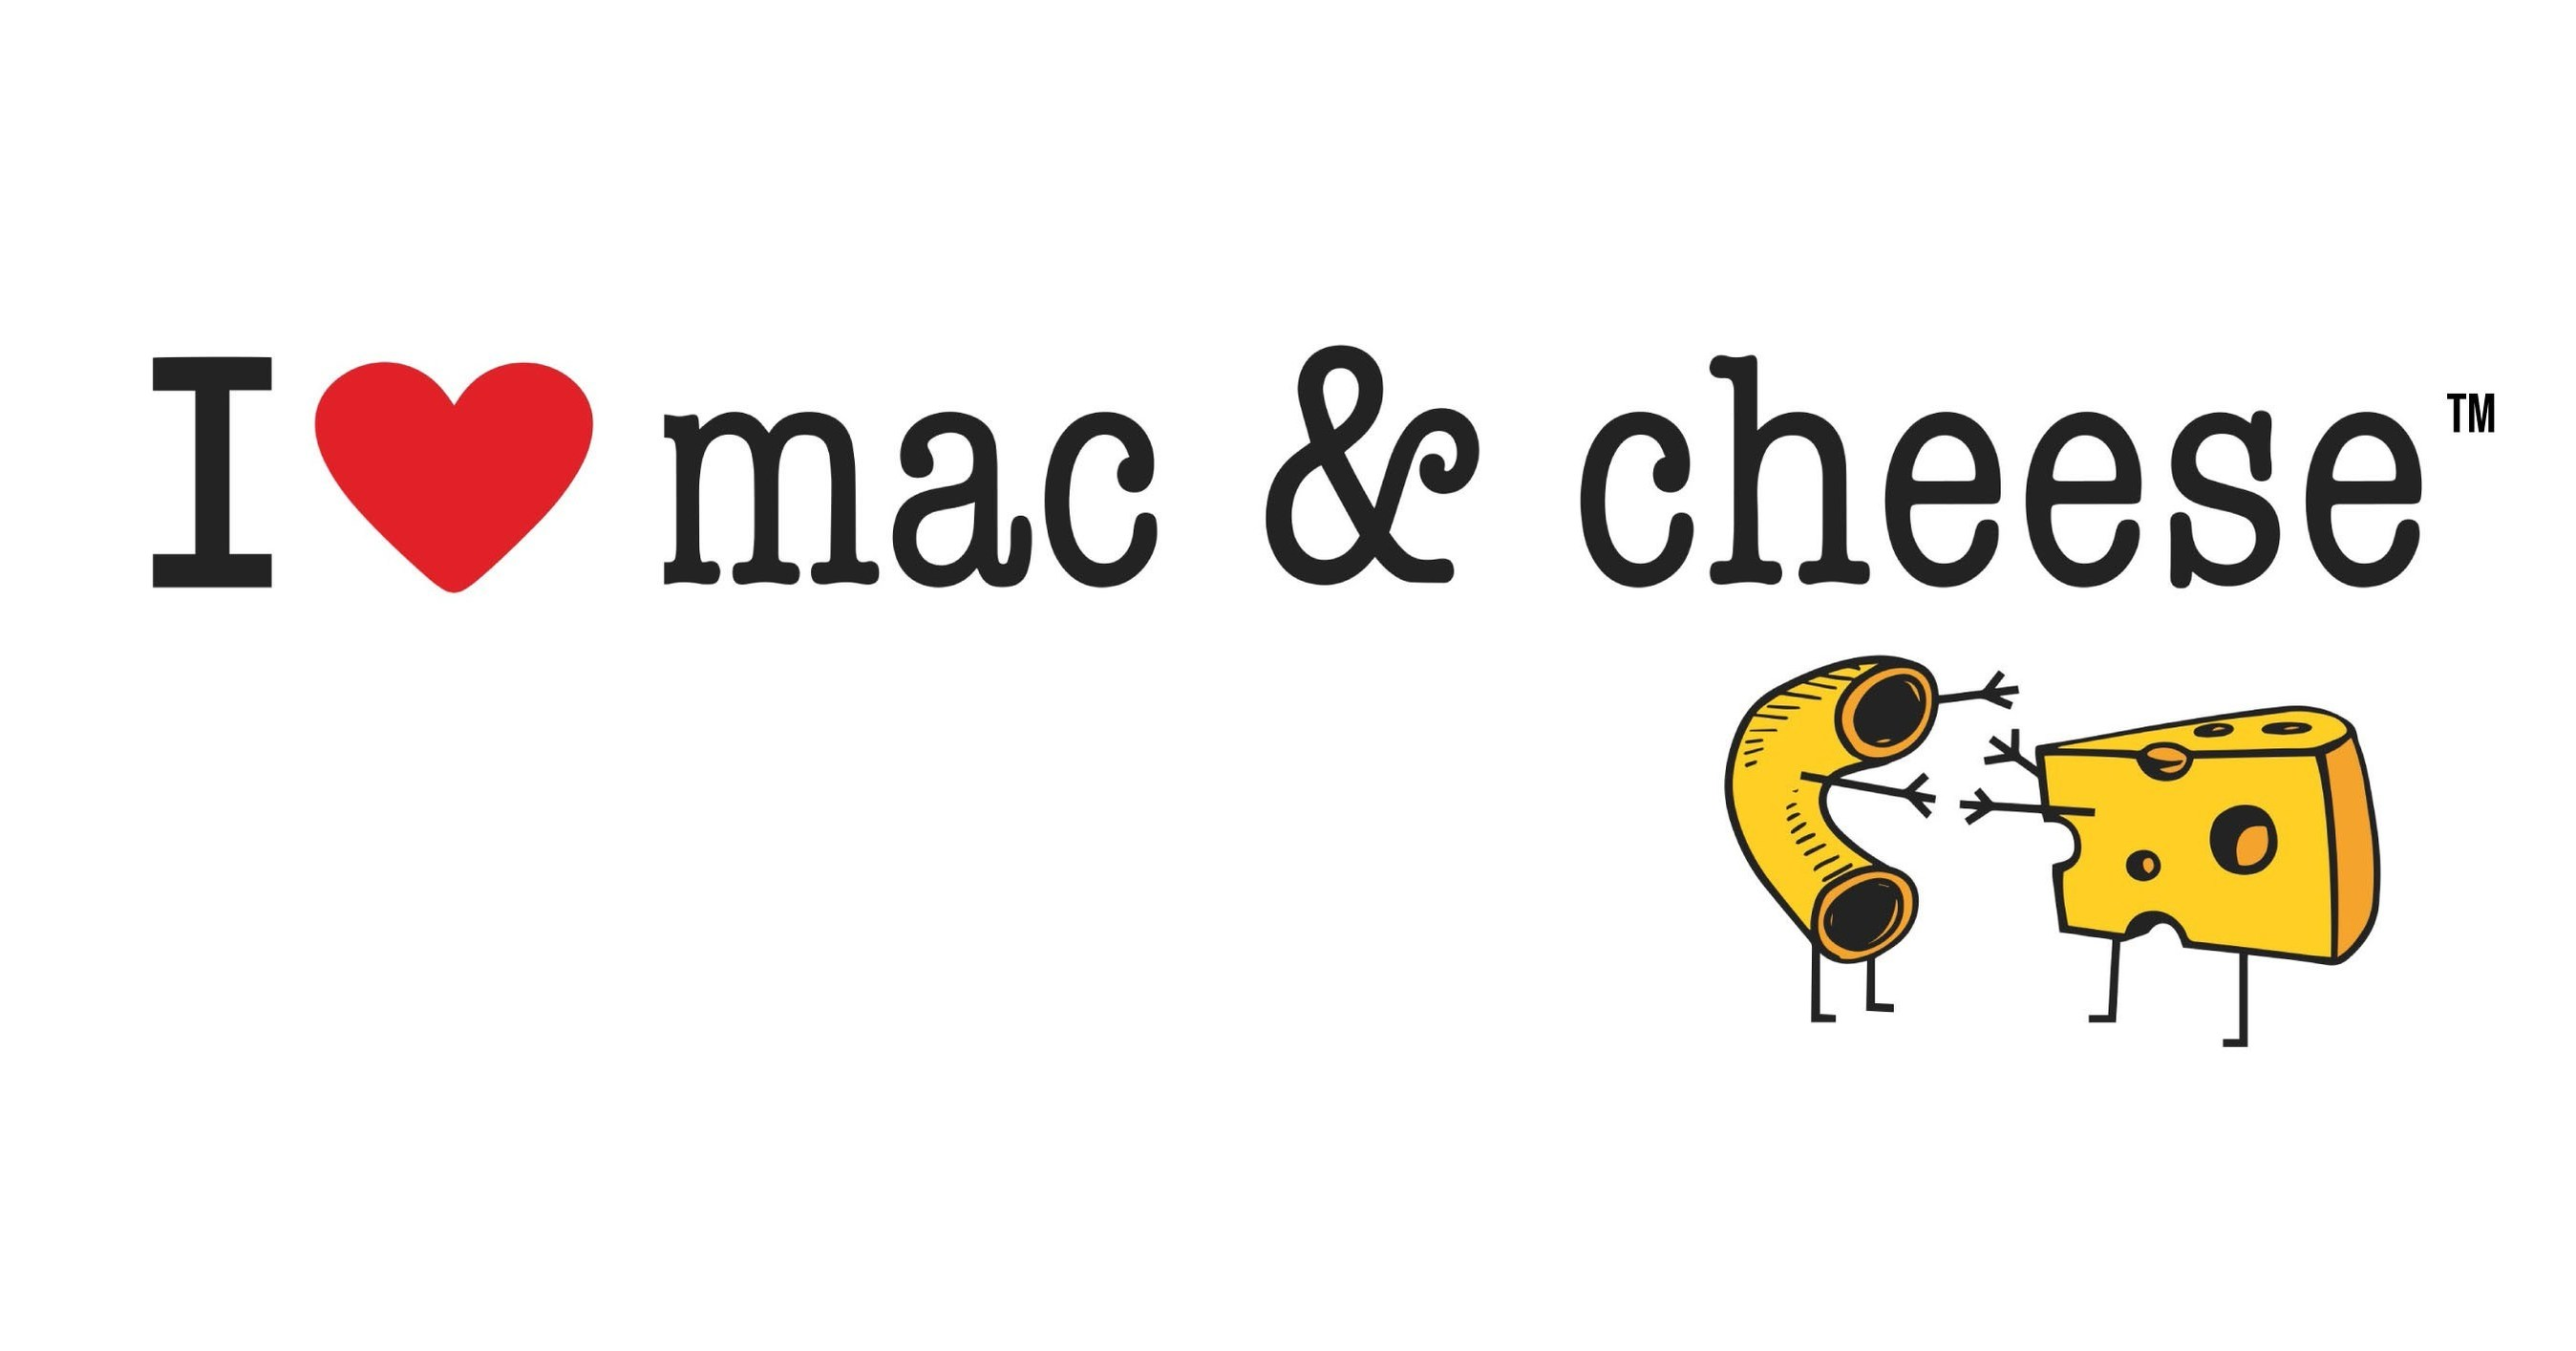 I Heart Mac & Cheese If you're looking for some Mac n cheese, look no further.